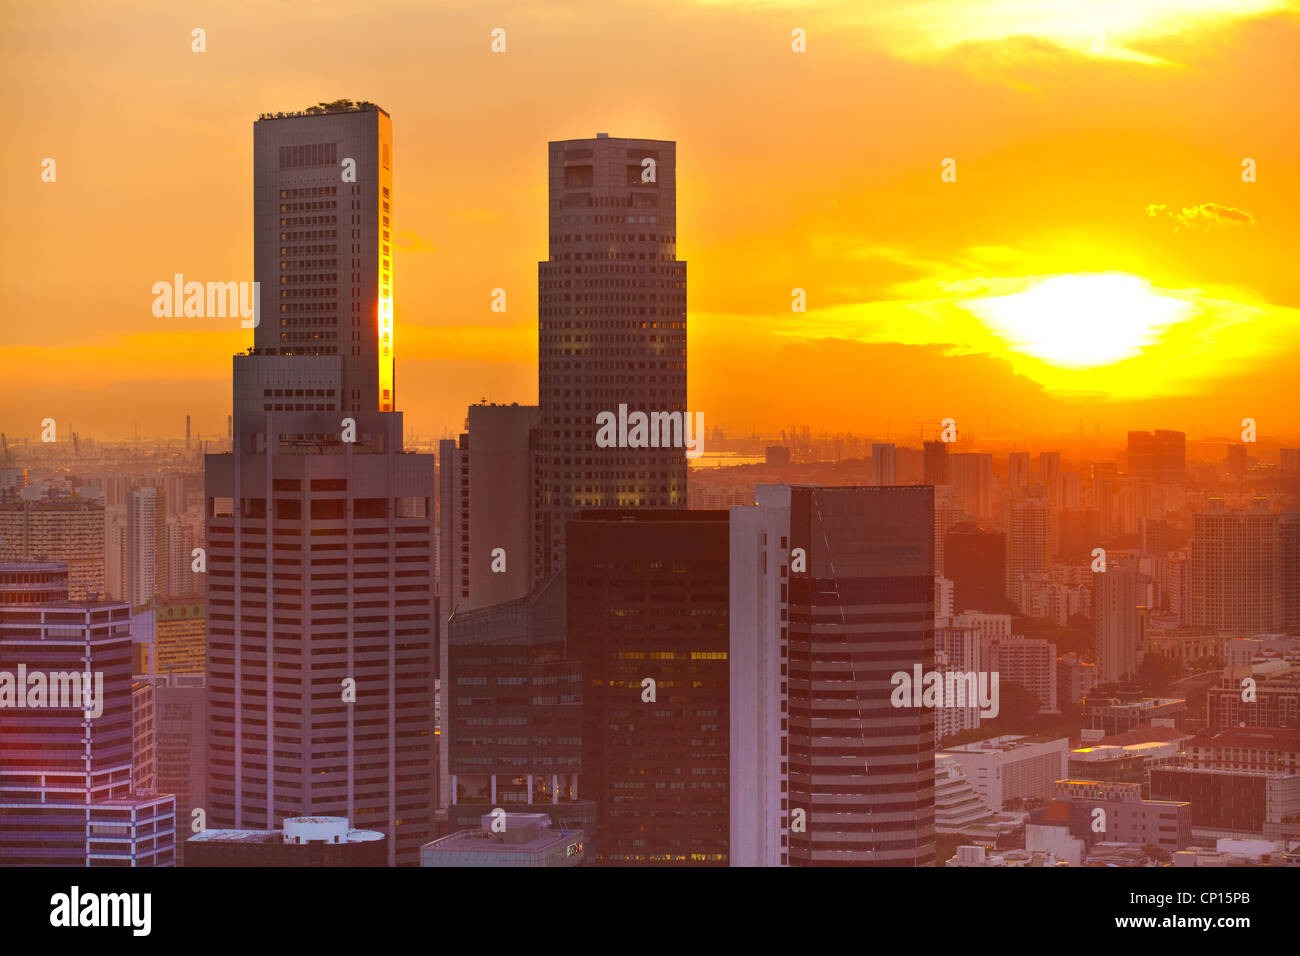 View of Singapore in the evening at sunset. - Stock Image